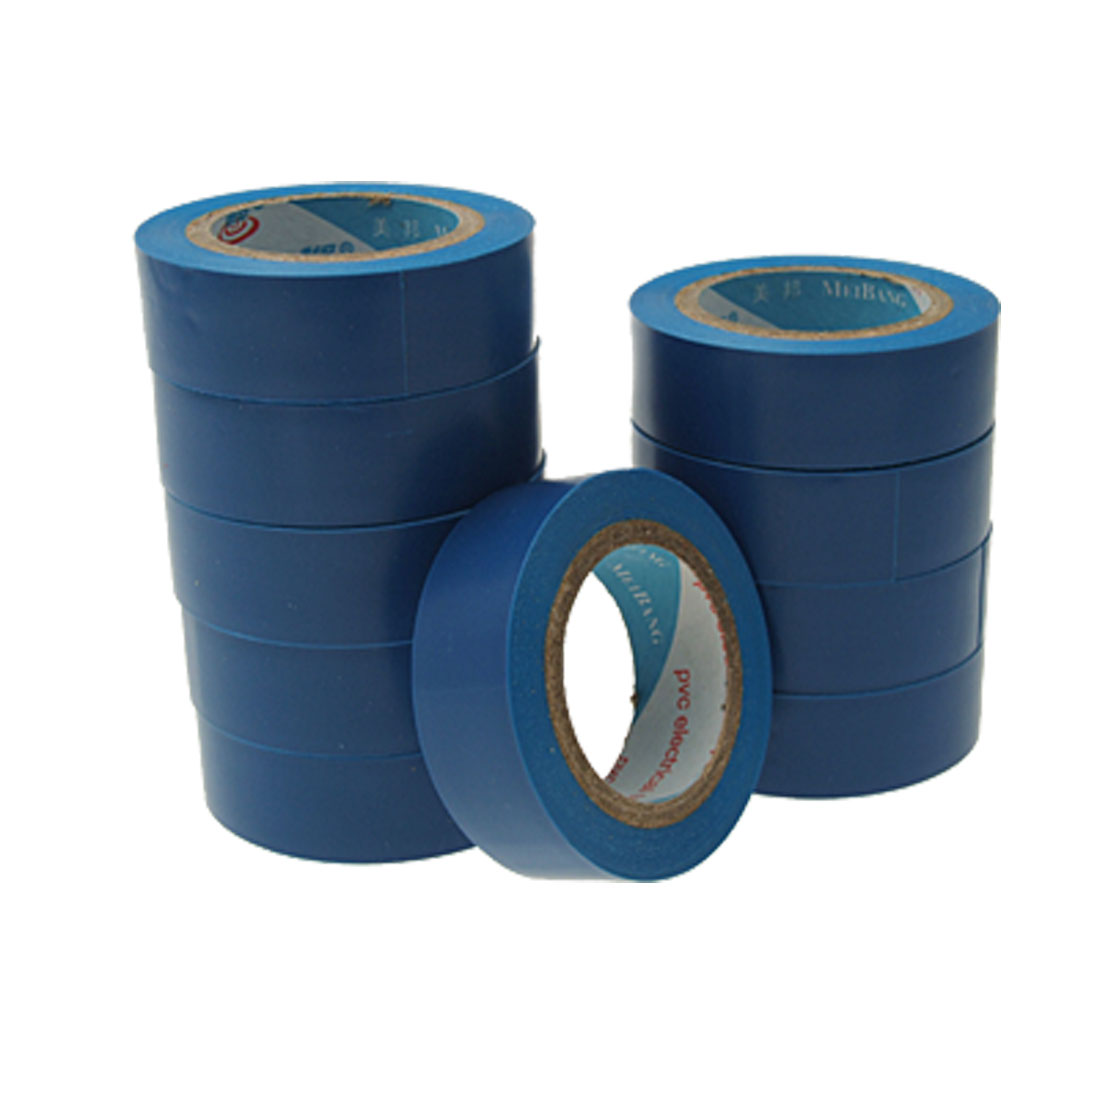 Blue Adhesive PVC Plastic Electrical Tape 10 Rolls